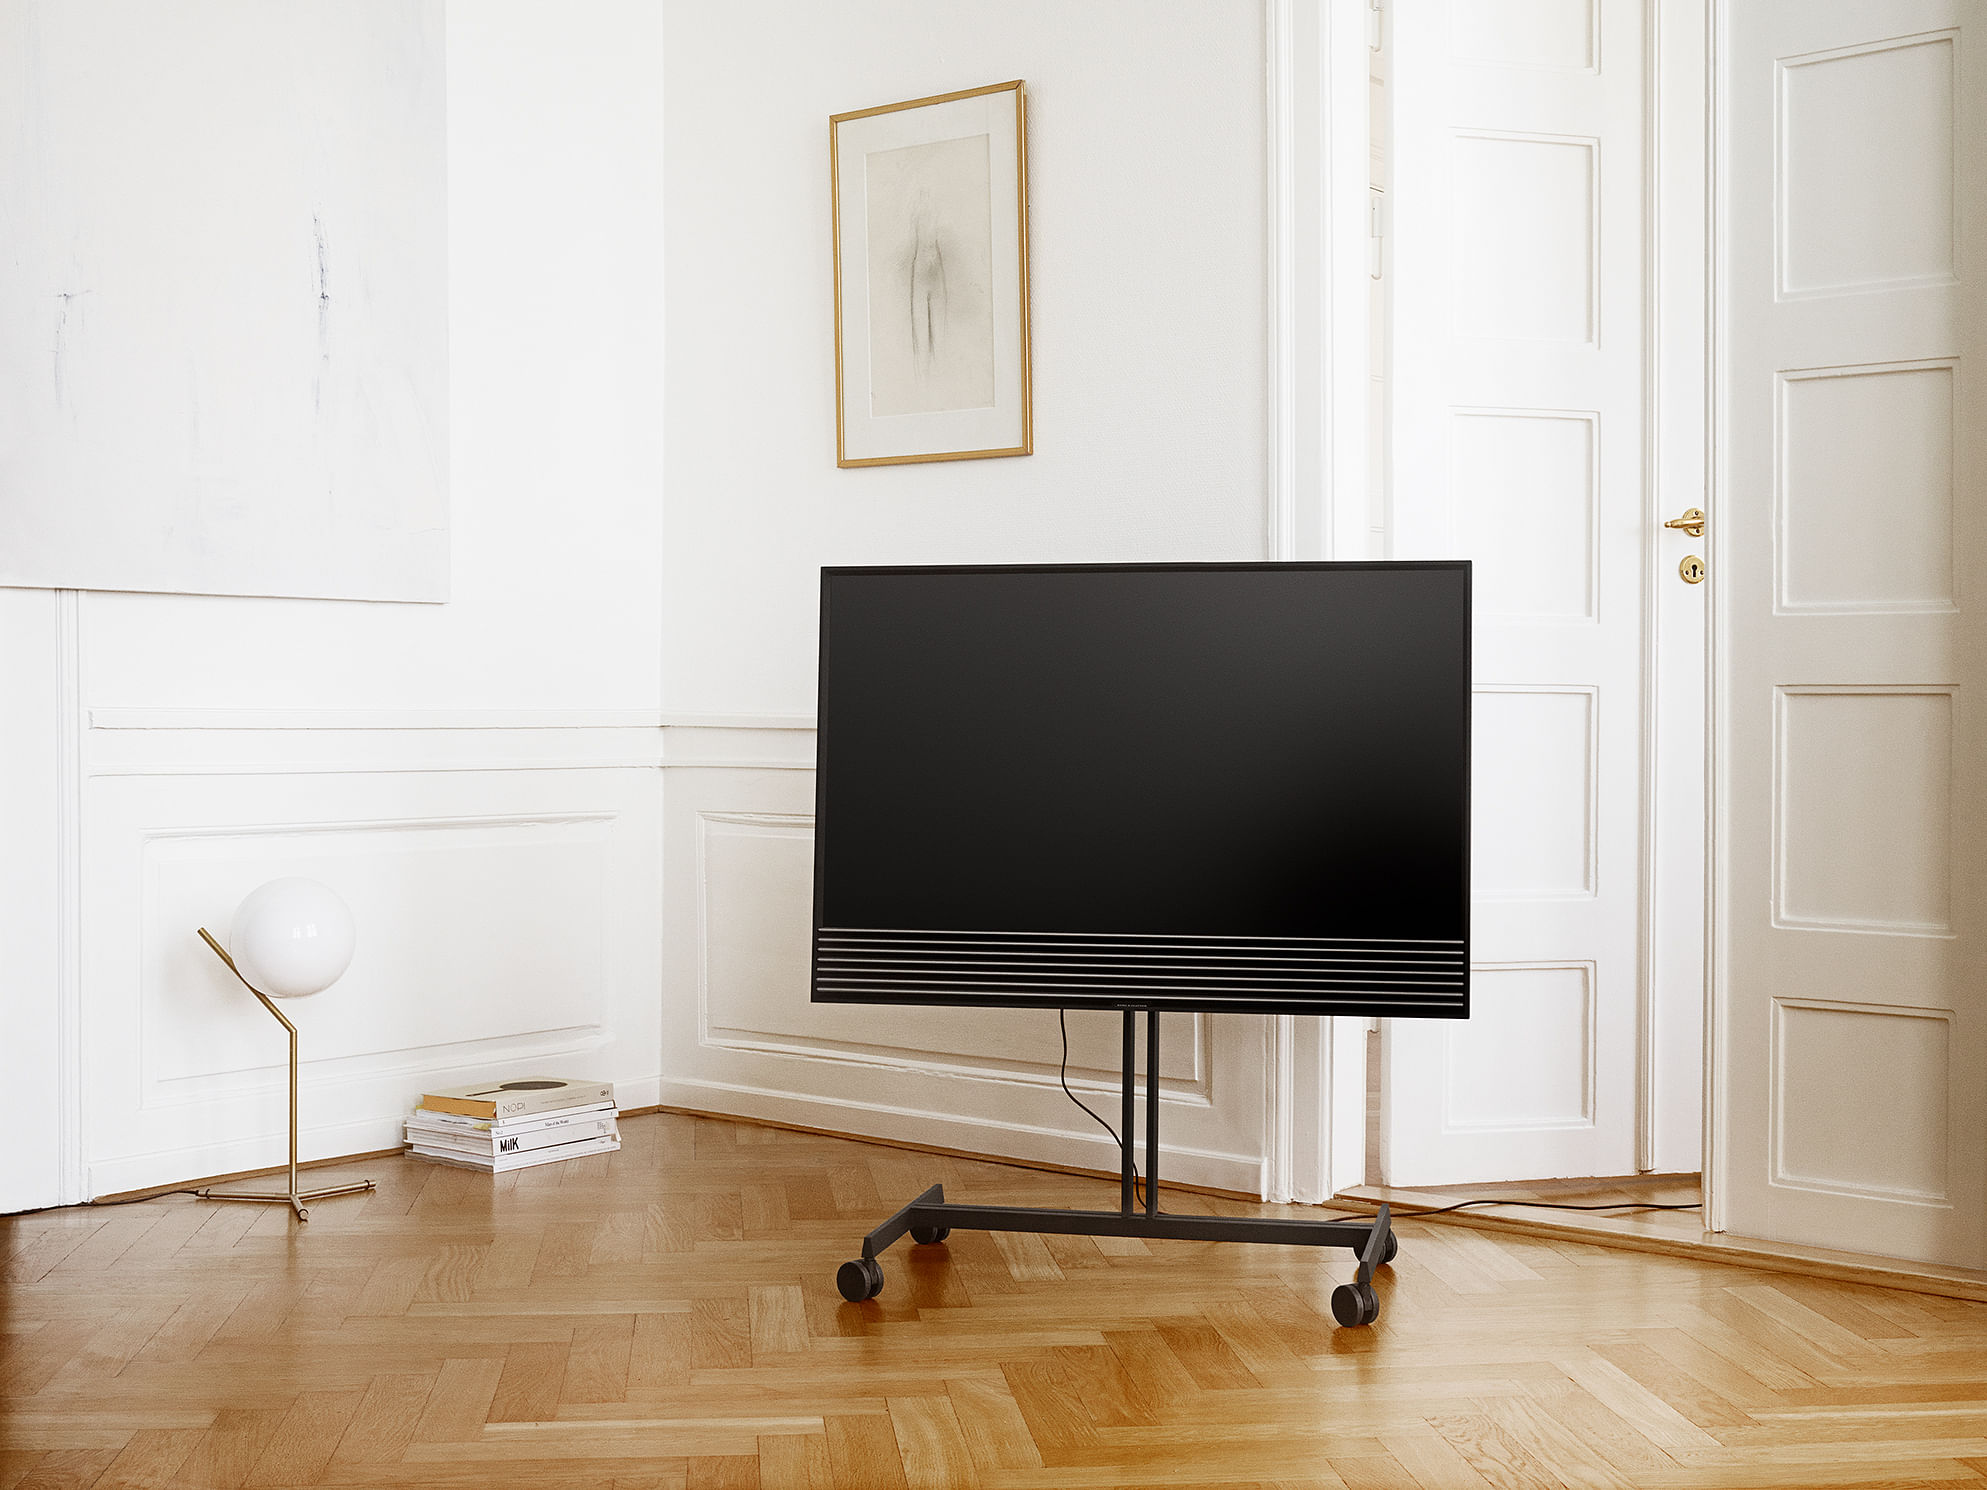 Shopping: Bang & Olufsen's Flexible Living range gives you ultimate  flexibility and style